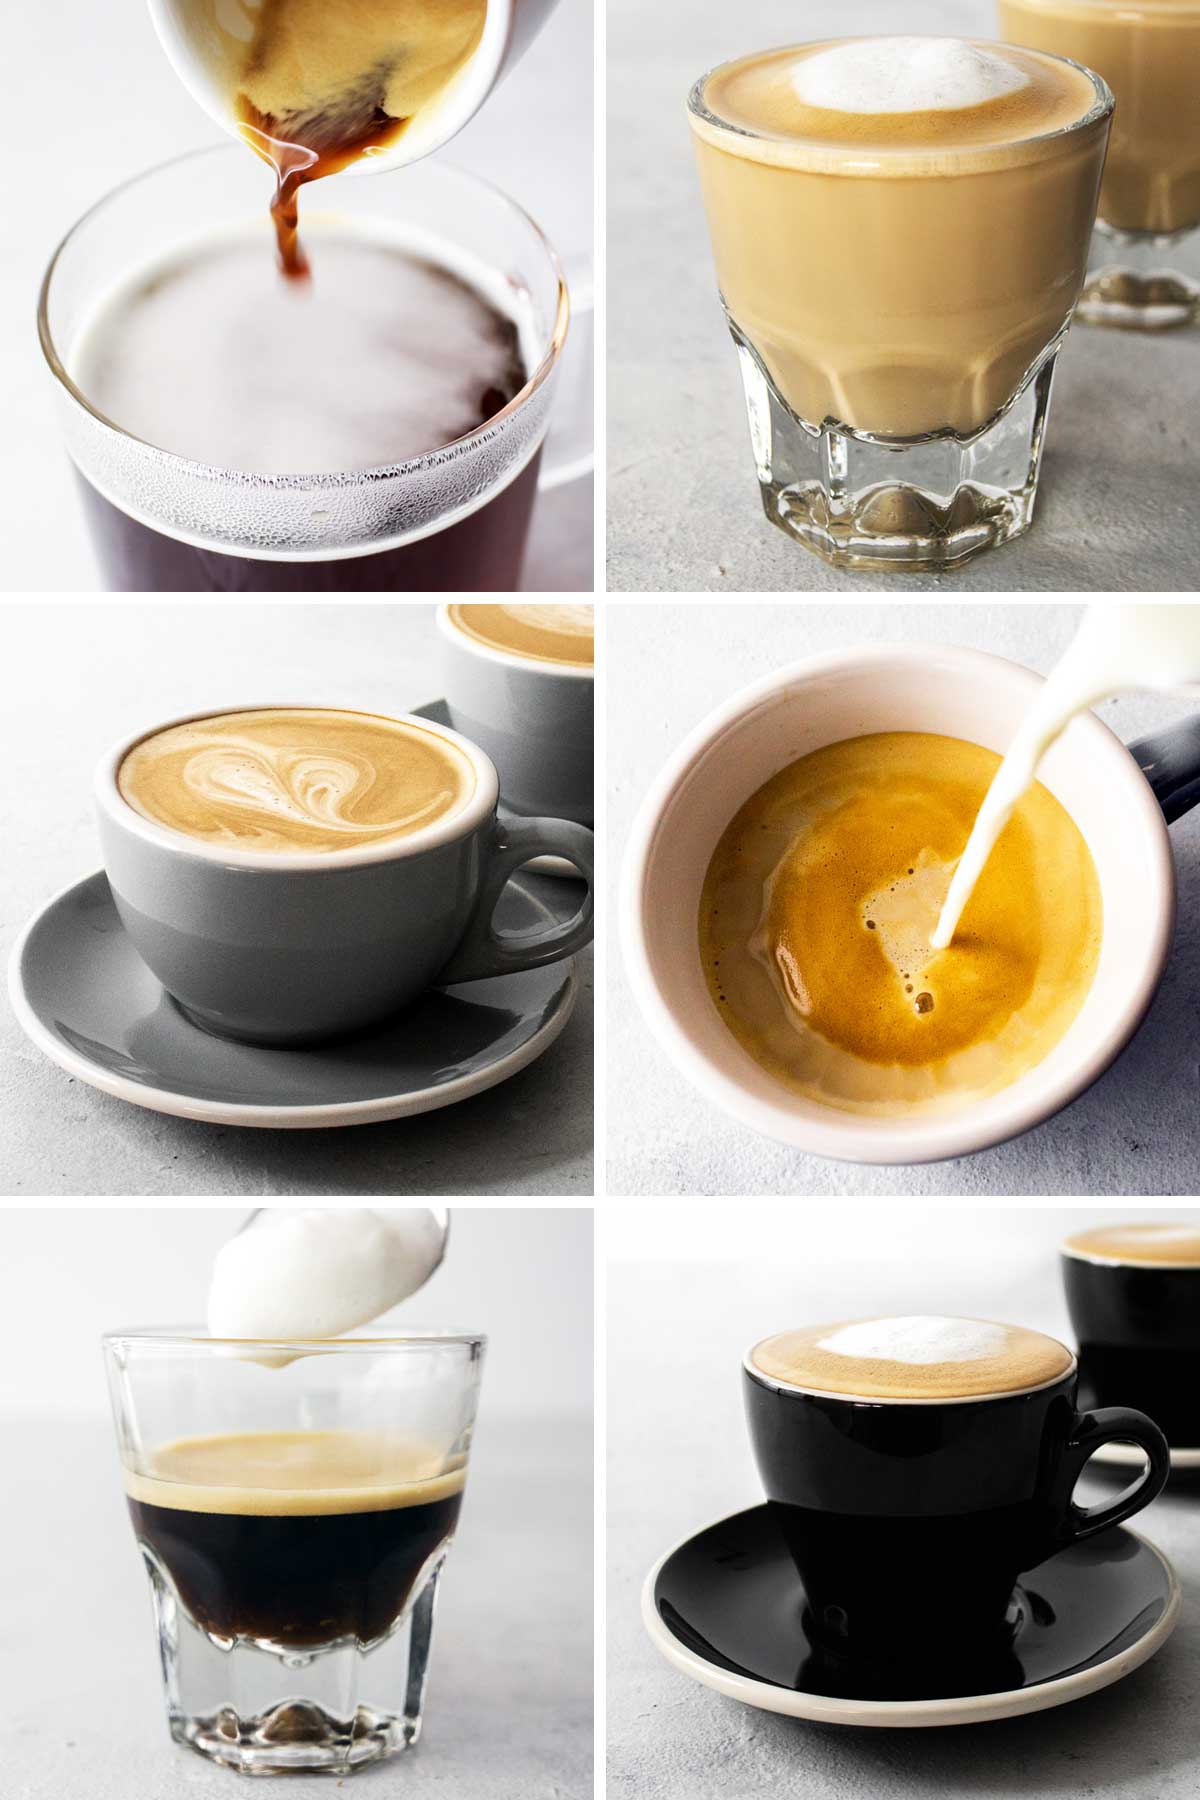 6 photos of different coffee drinks.